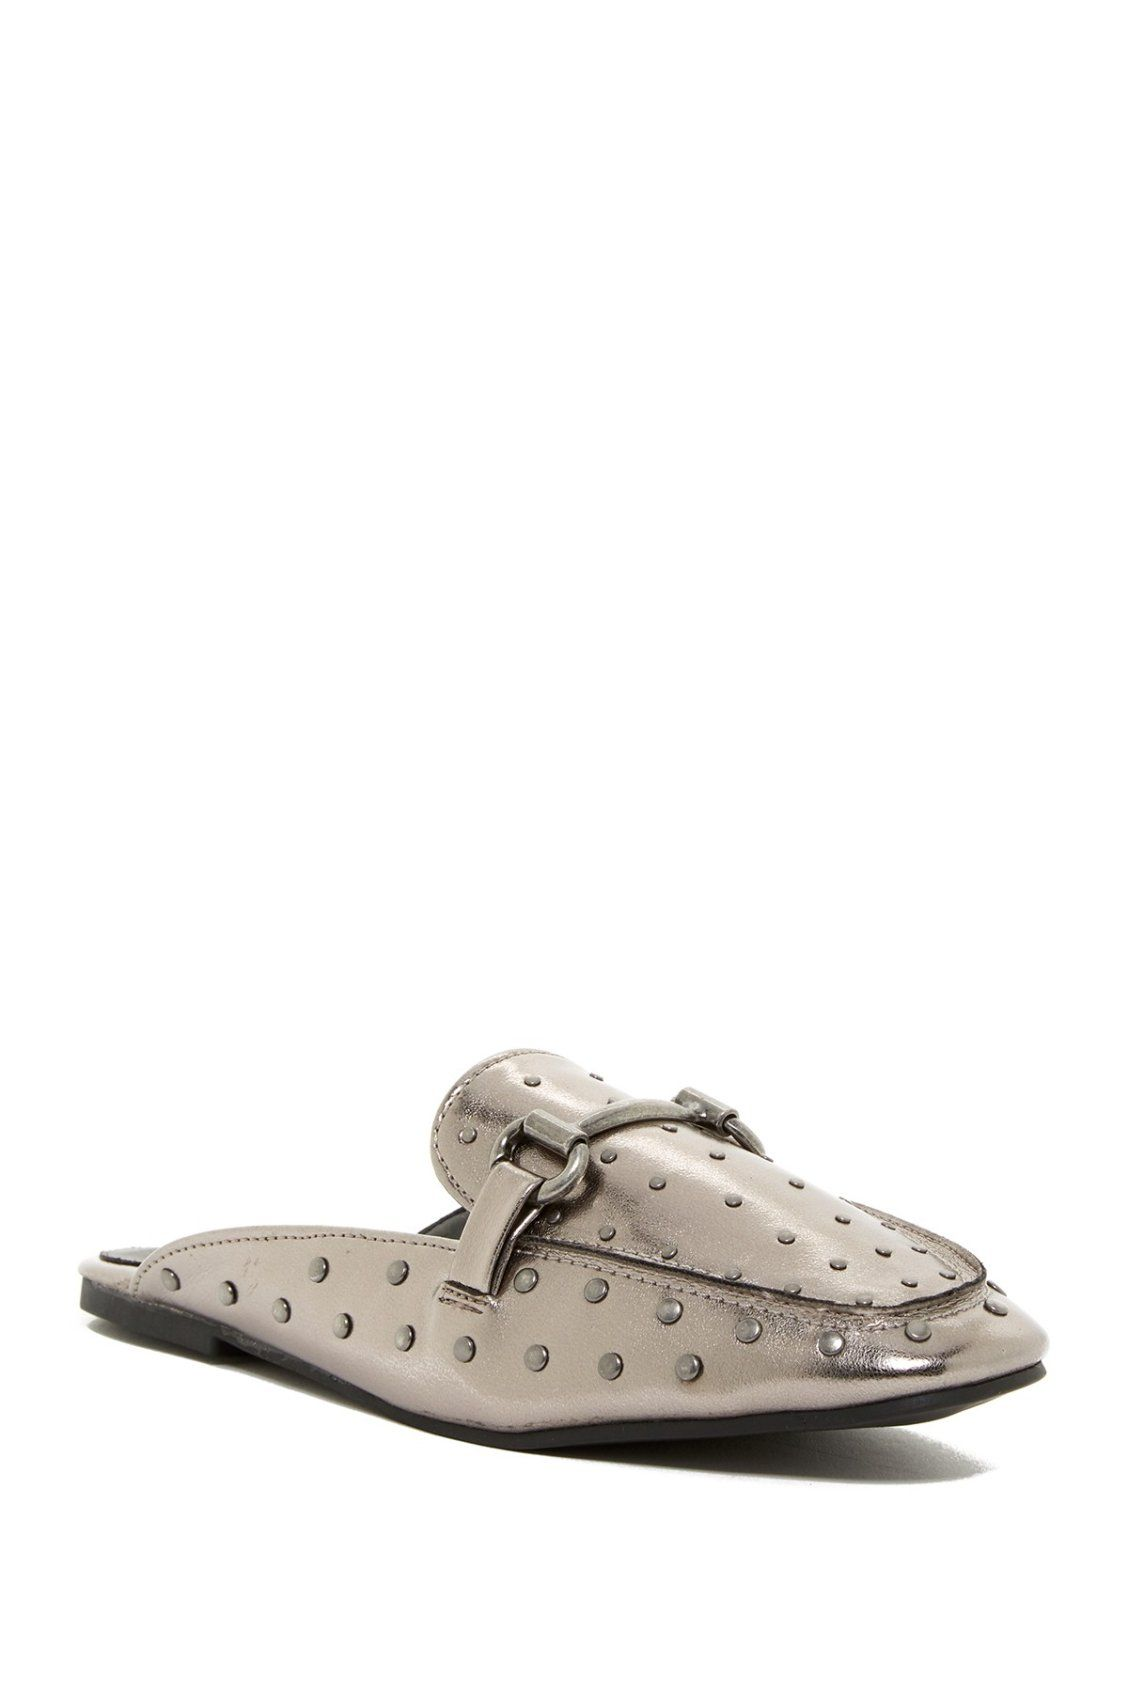 aa9d1603c323 Madden Girl Miloo Studded Loafers Studded Loafers